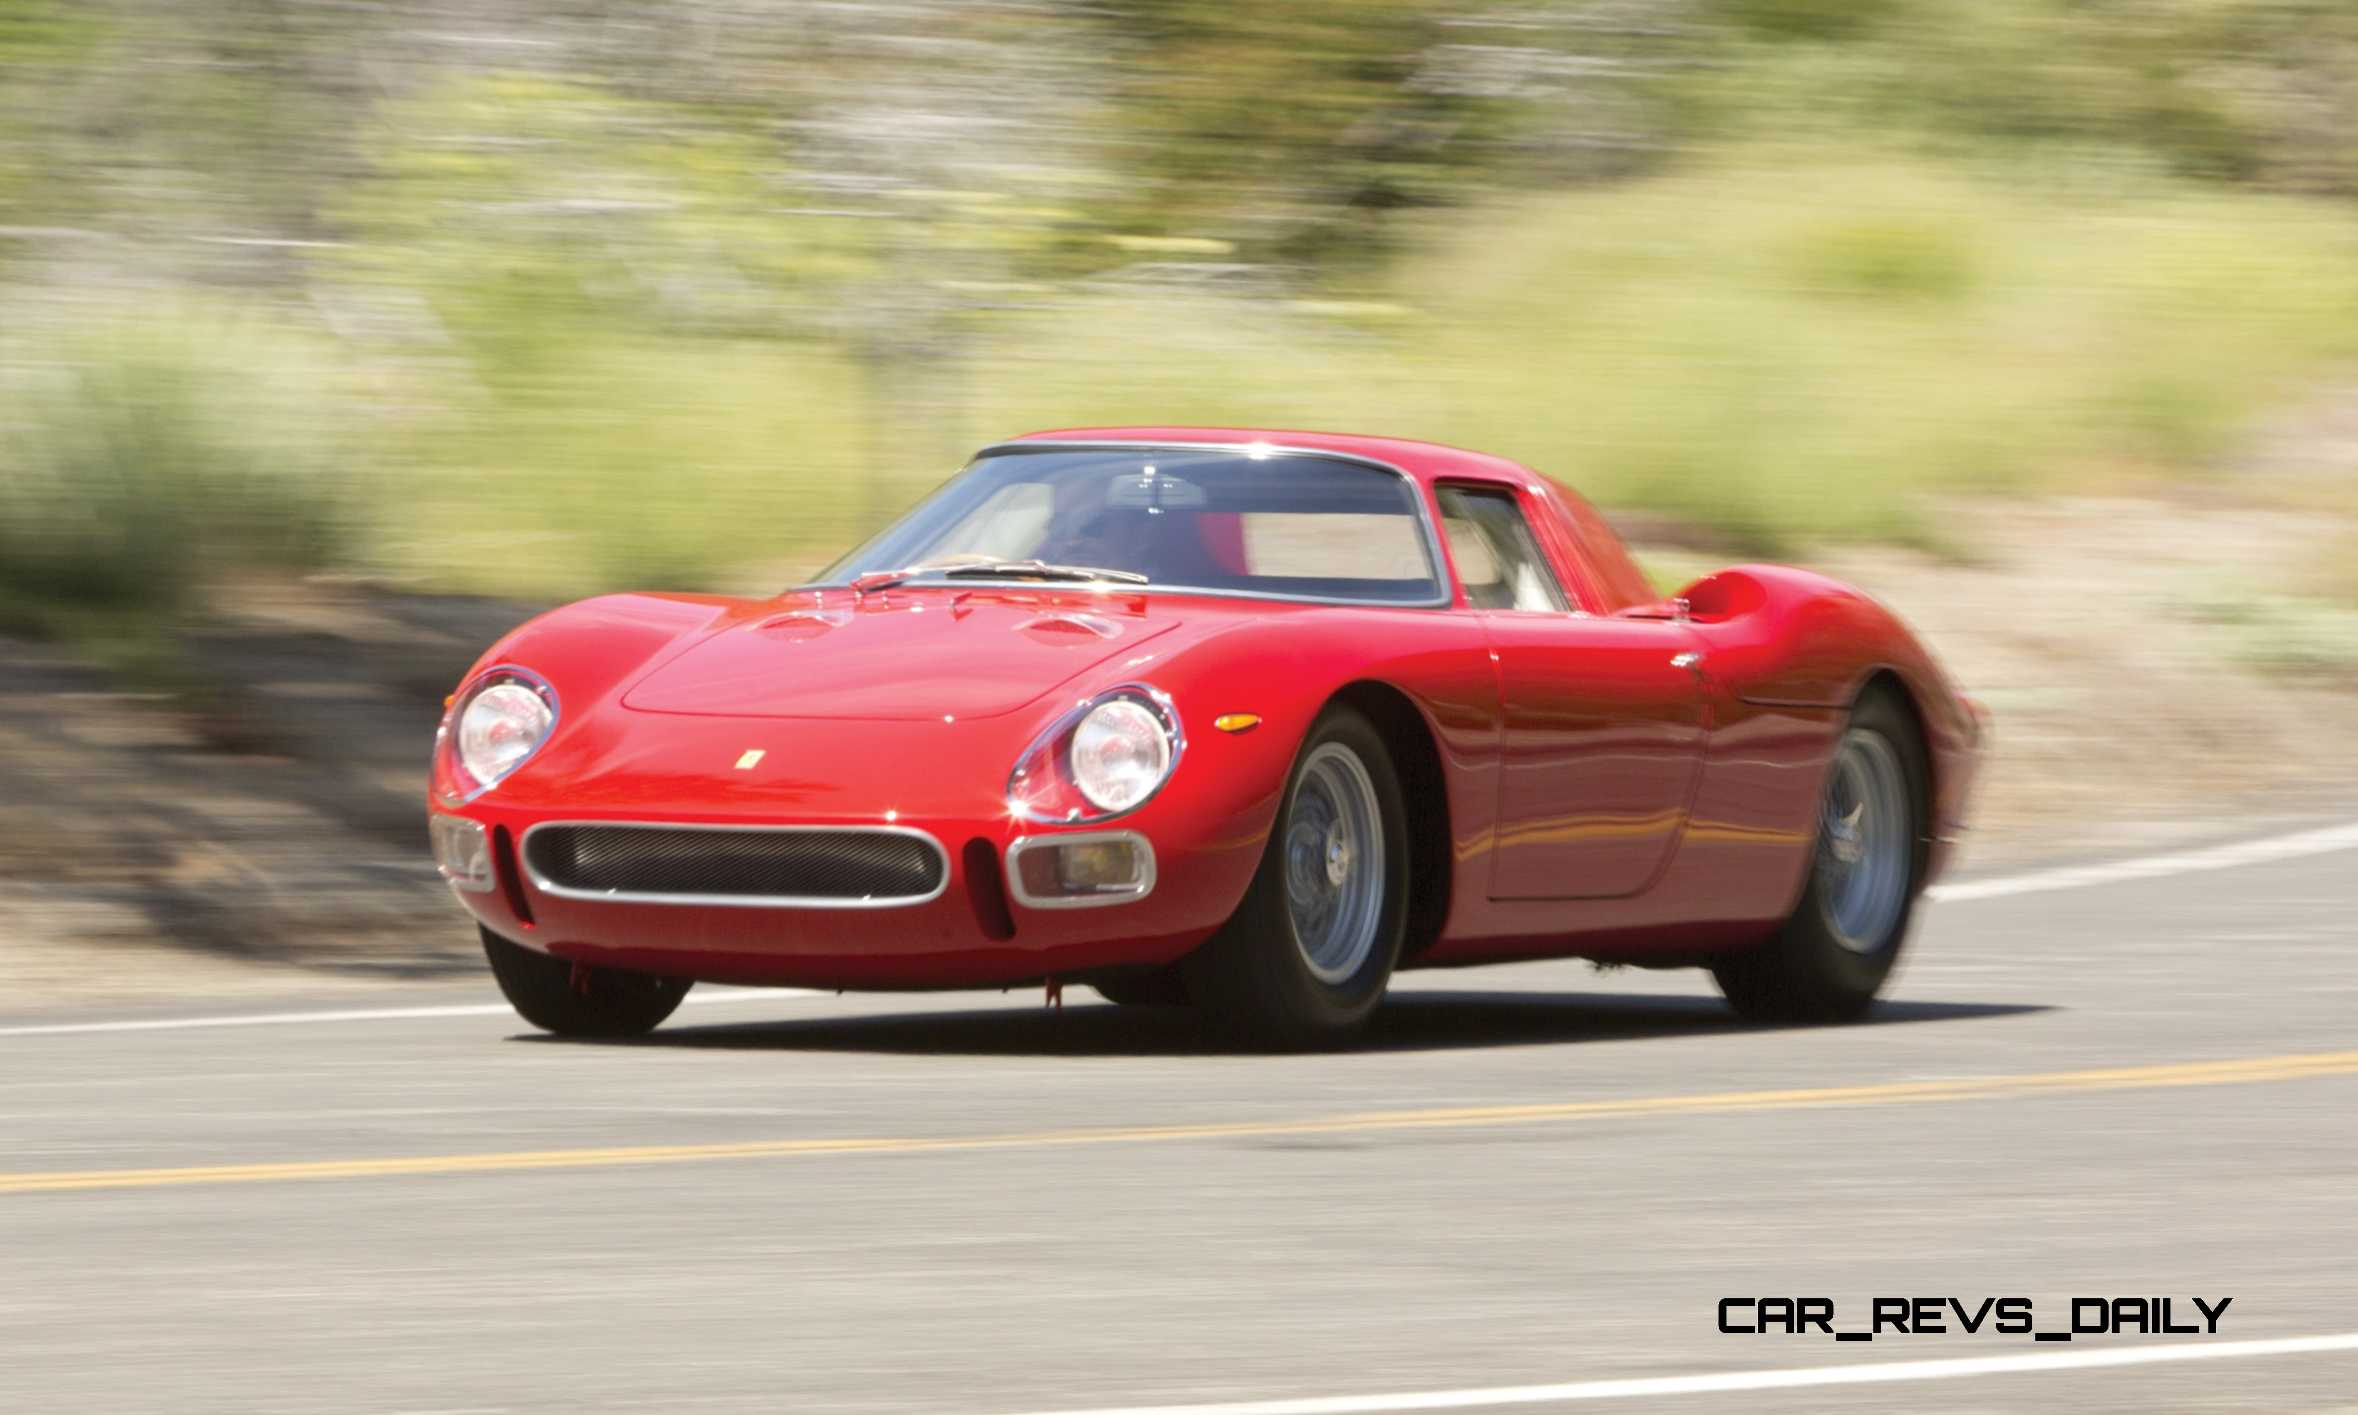 Best Car Wallpapers Ever Rm Monterey 2014 1964 Ferrari 250 Lm By Scaglietti